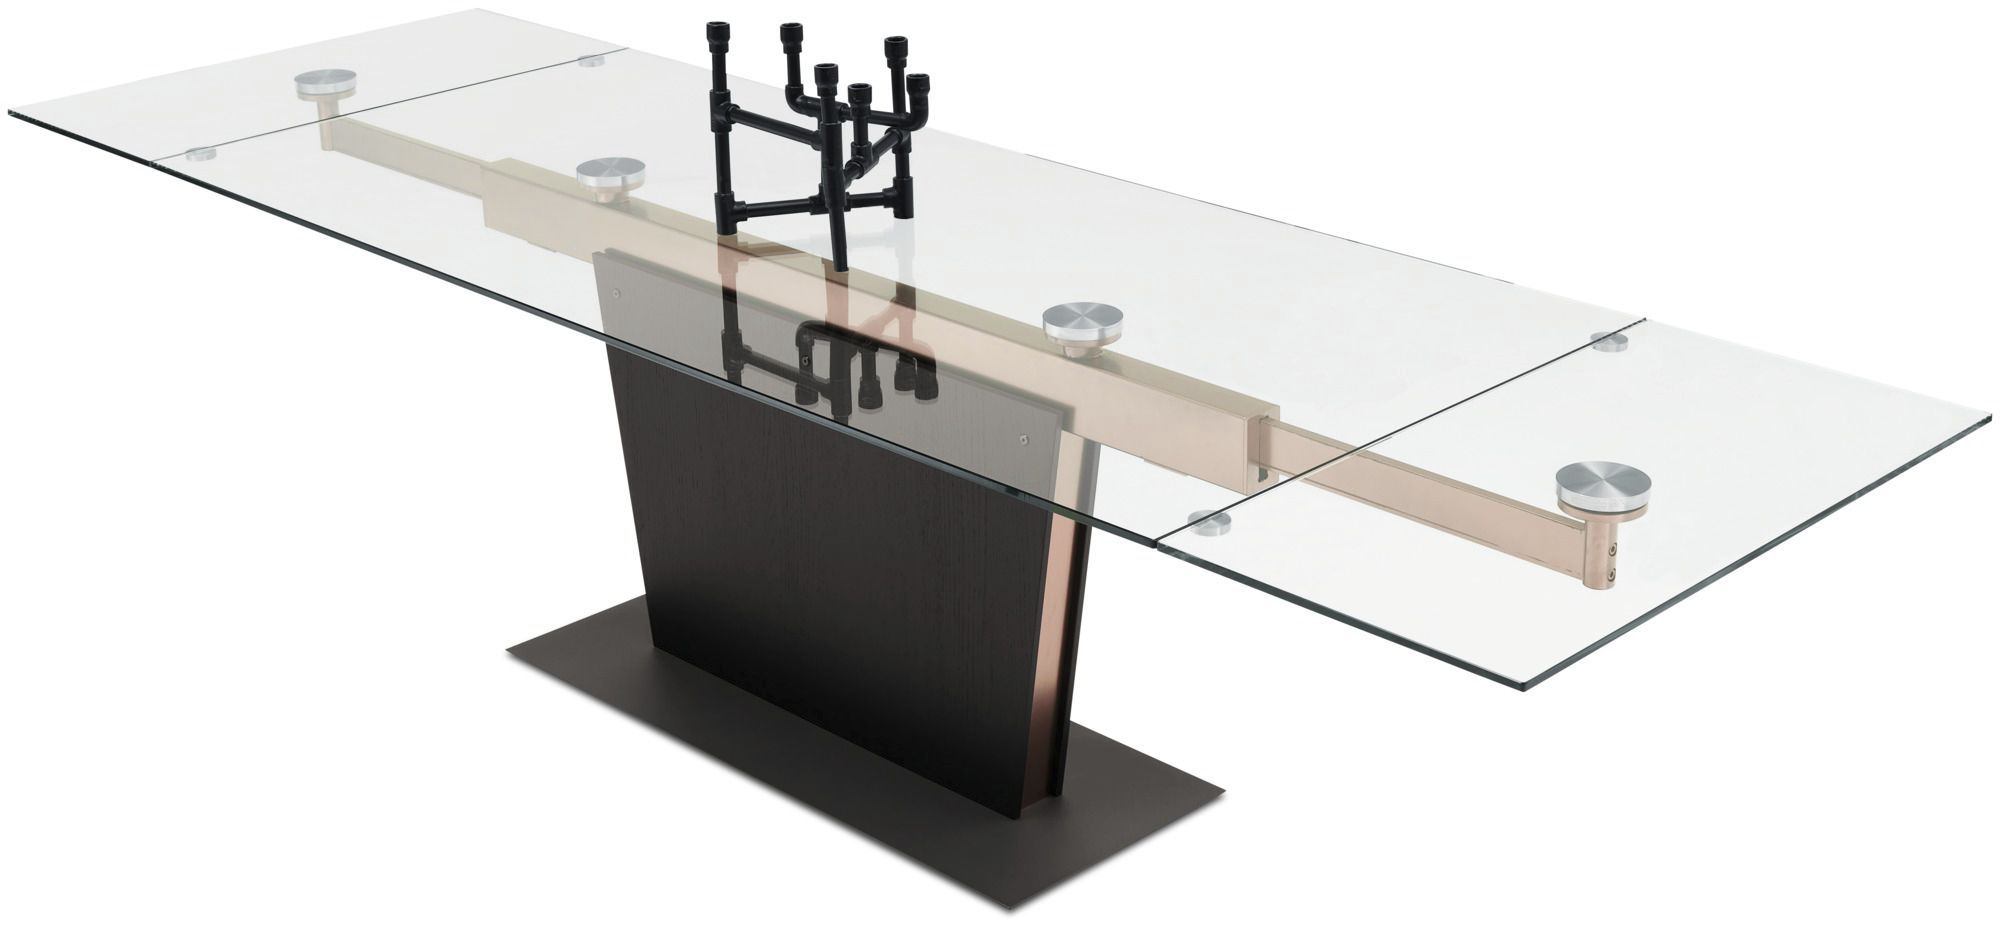 ... Contemporary dining table / glass / MDF / steel MONZA BoConcept ...